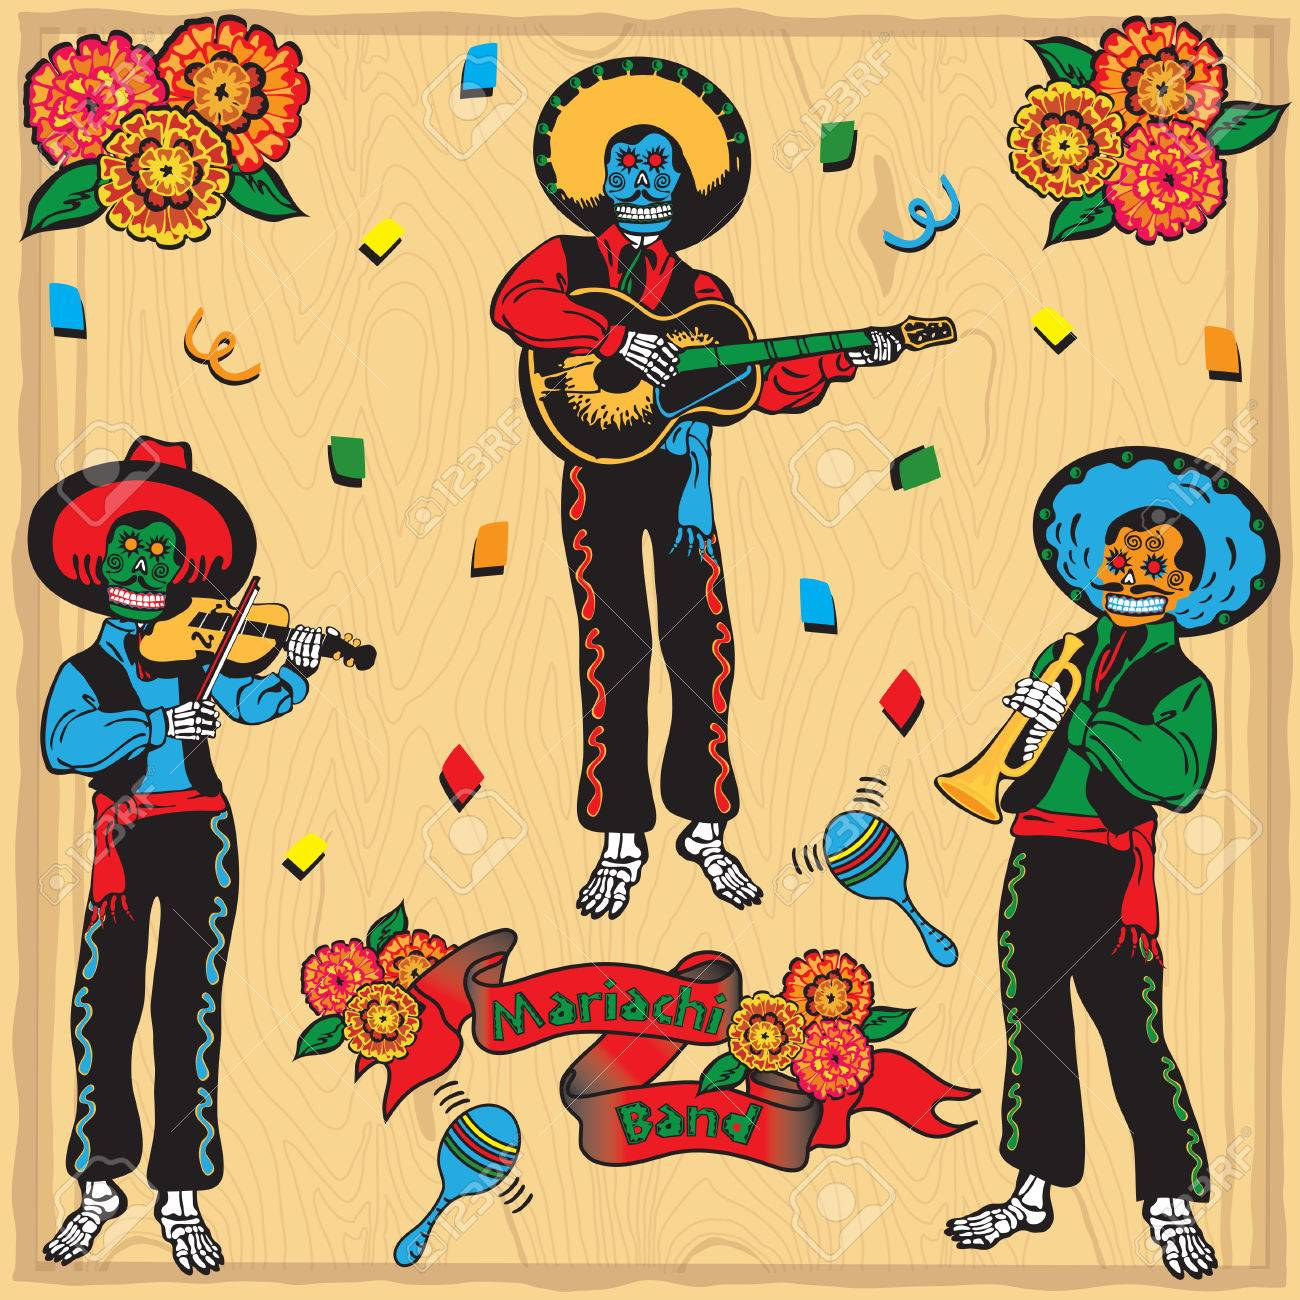 Colorful Day of the Dead Mariachi Band with banner and flowers on a faded wood background Stock Vector - 6609204